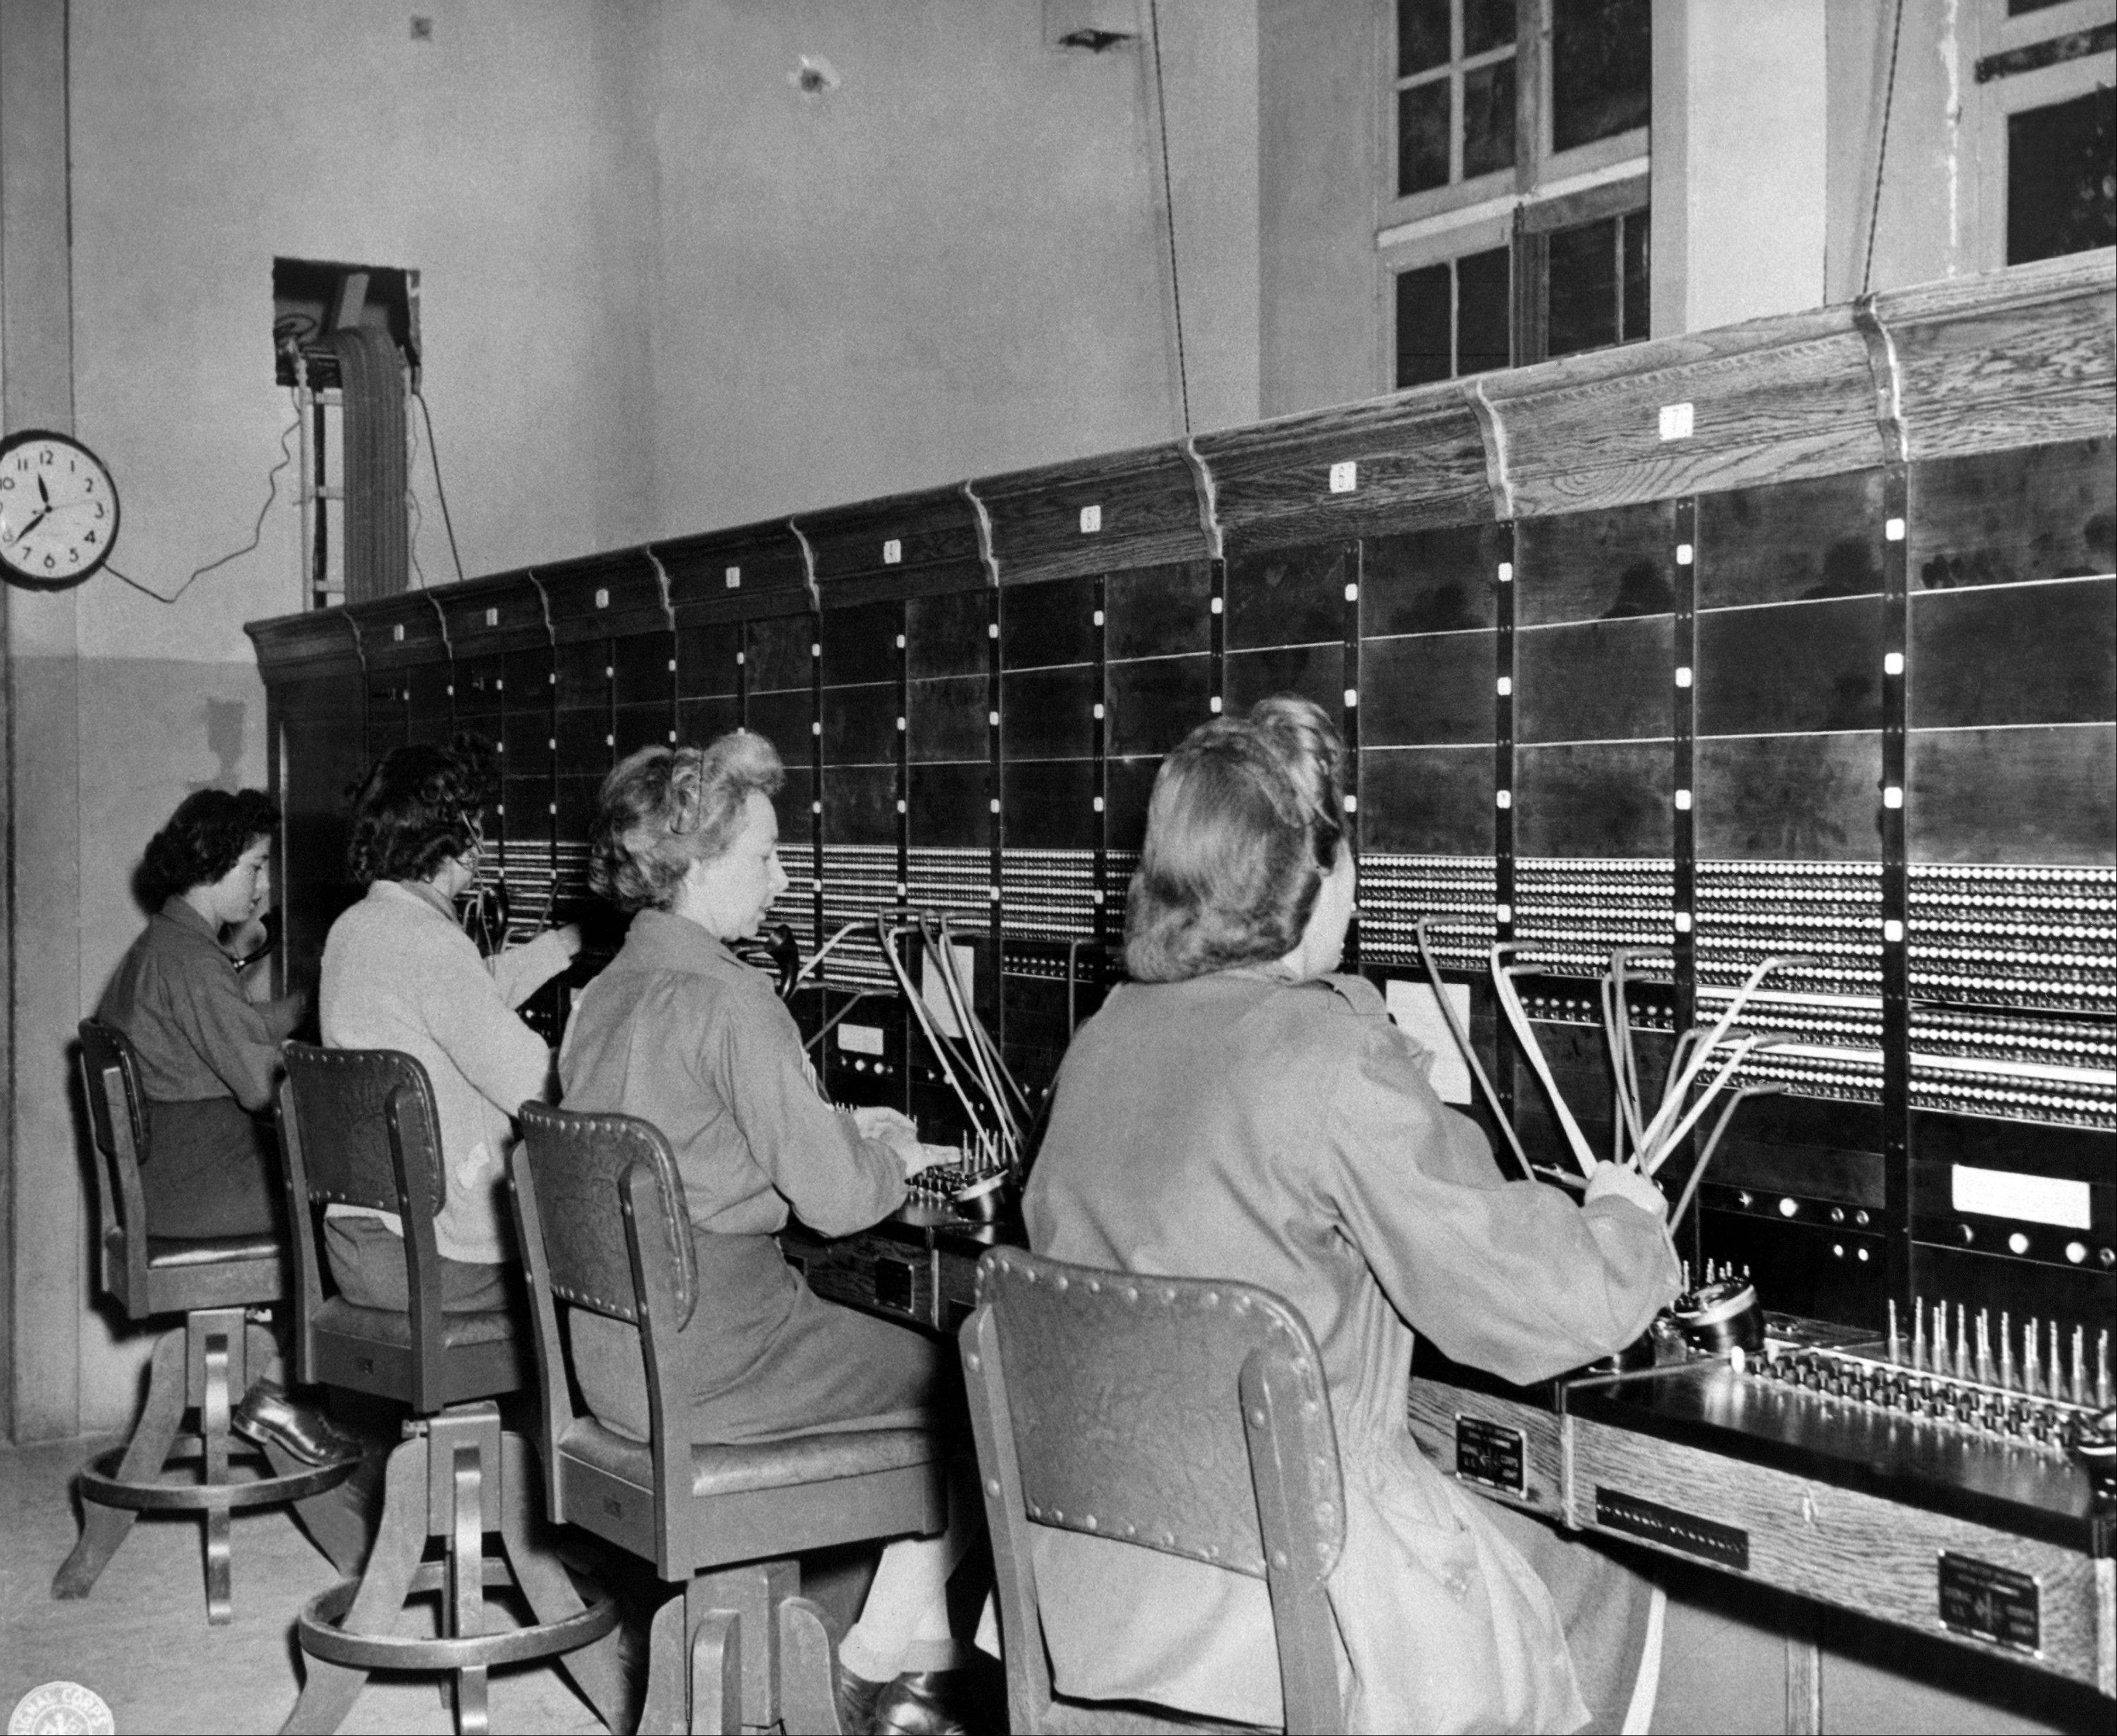 Oct. 7, 1944: Women Army Corps (WAC) switchboard operators put military calls through at their base in France.